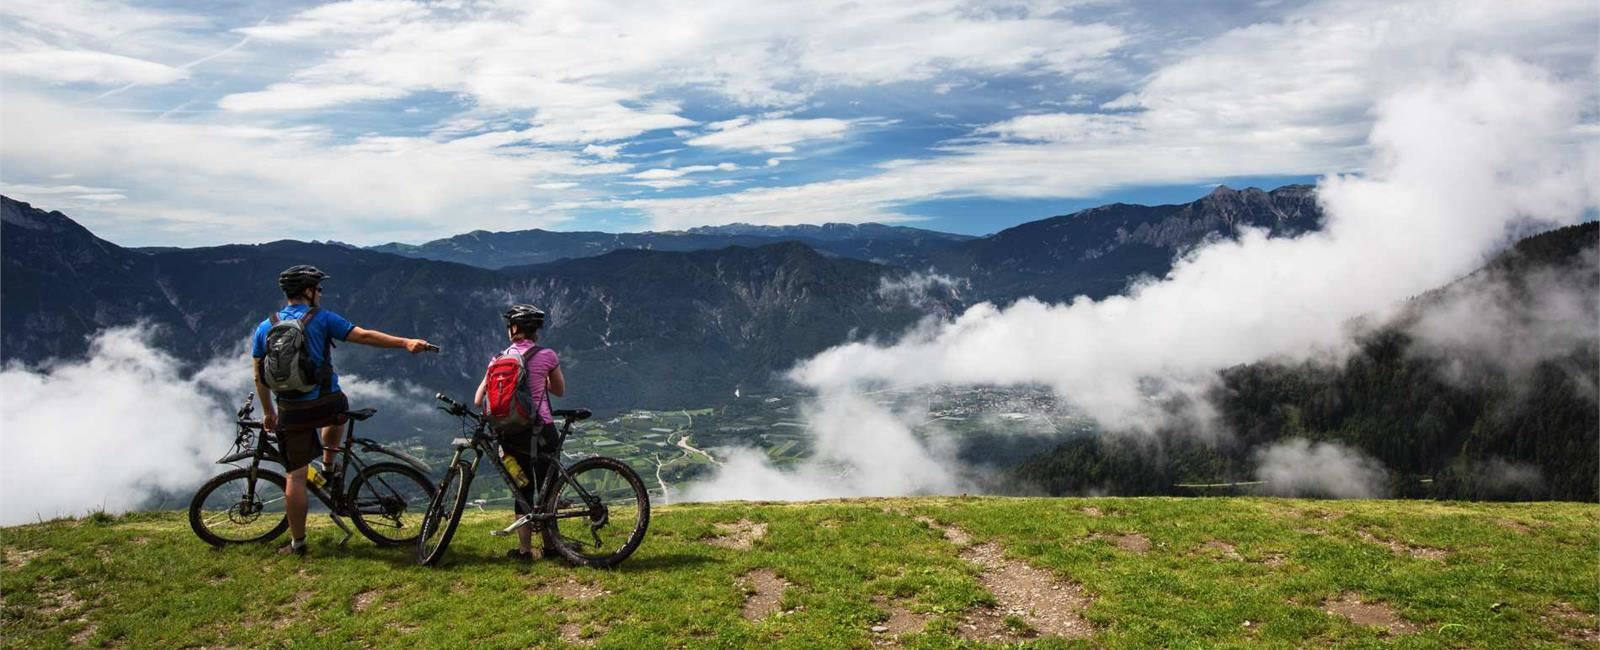 VALSUGANA & LAGORAI BIKE, UNIQUE EXPERIENCE!